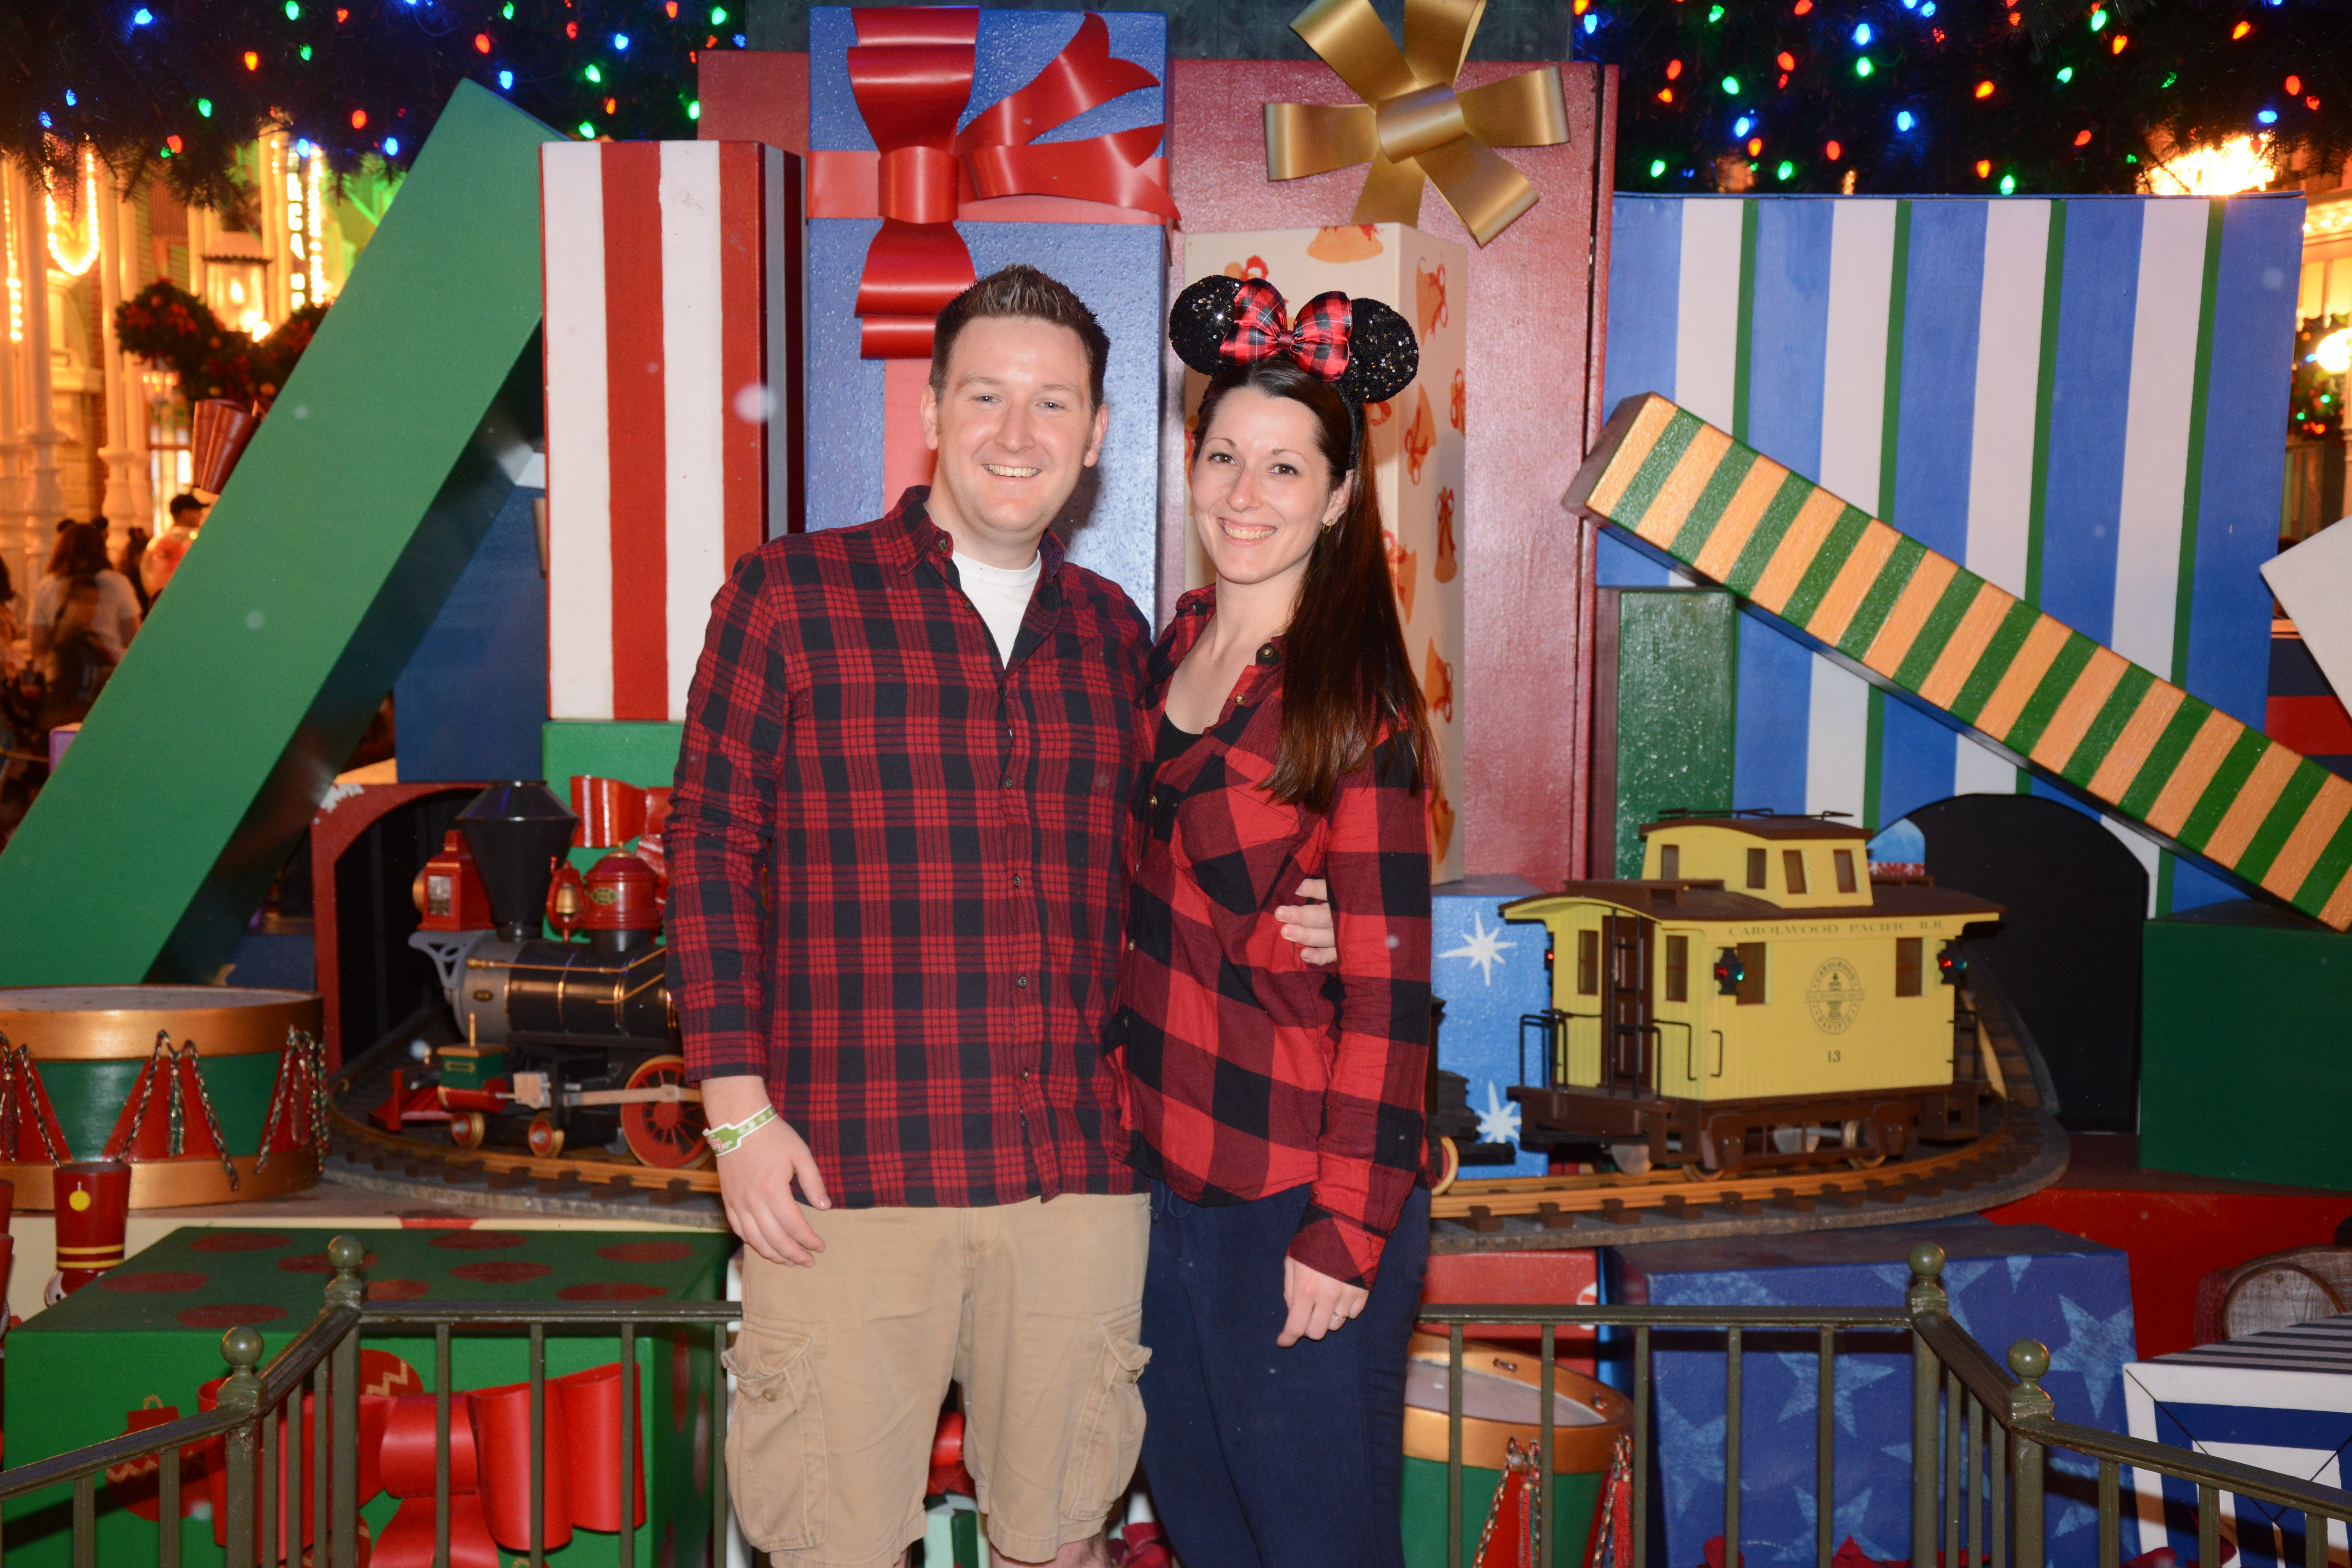 Ryan and Lauren Christmas at Magic Kingdom